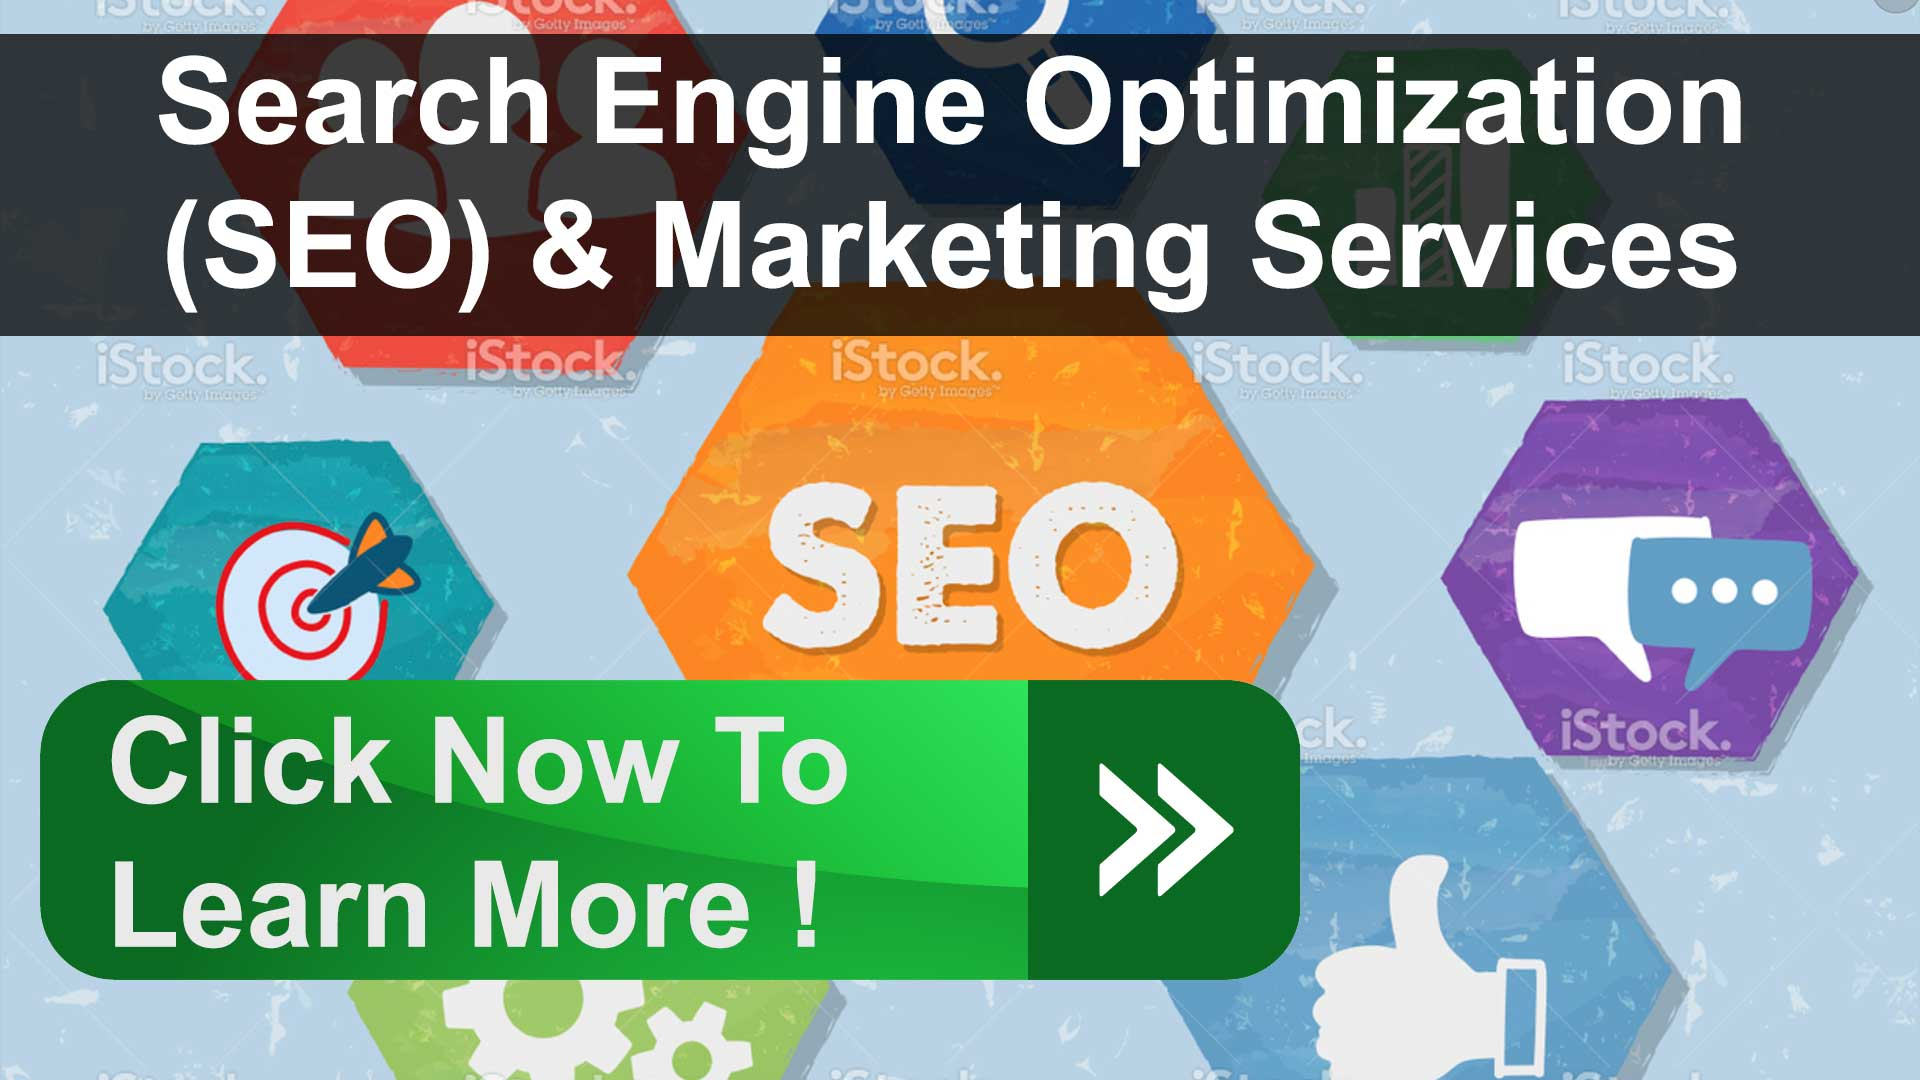 Website SEO & Promotion Services - Search Engine Optimization & Marketing